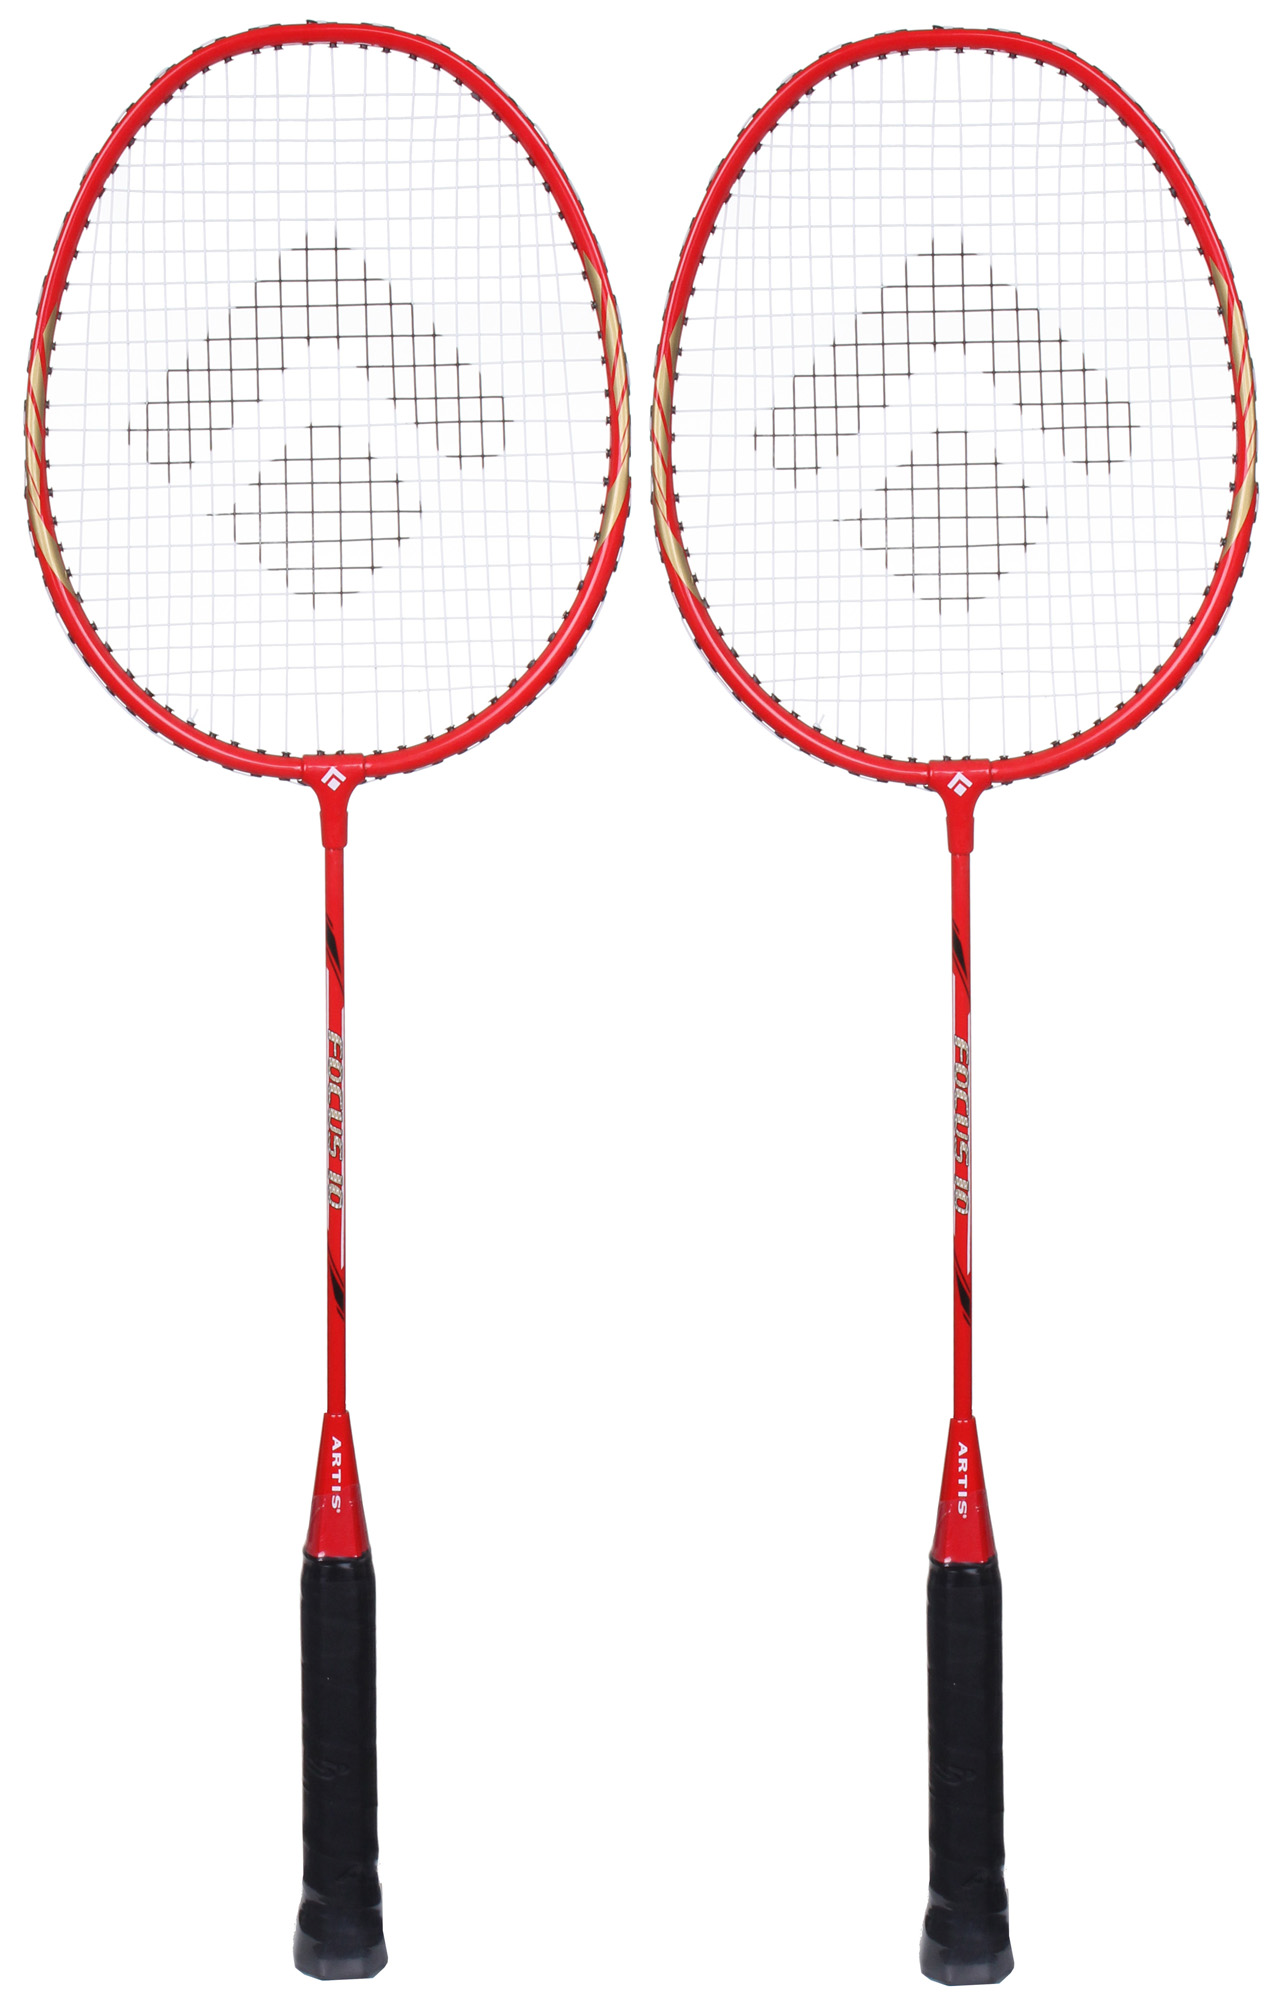 Artis Focus 10 badmintonový set